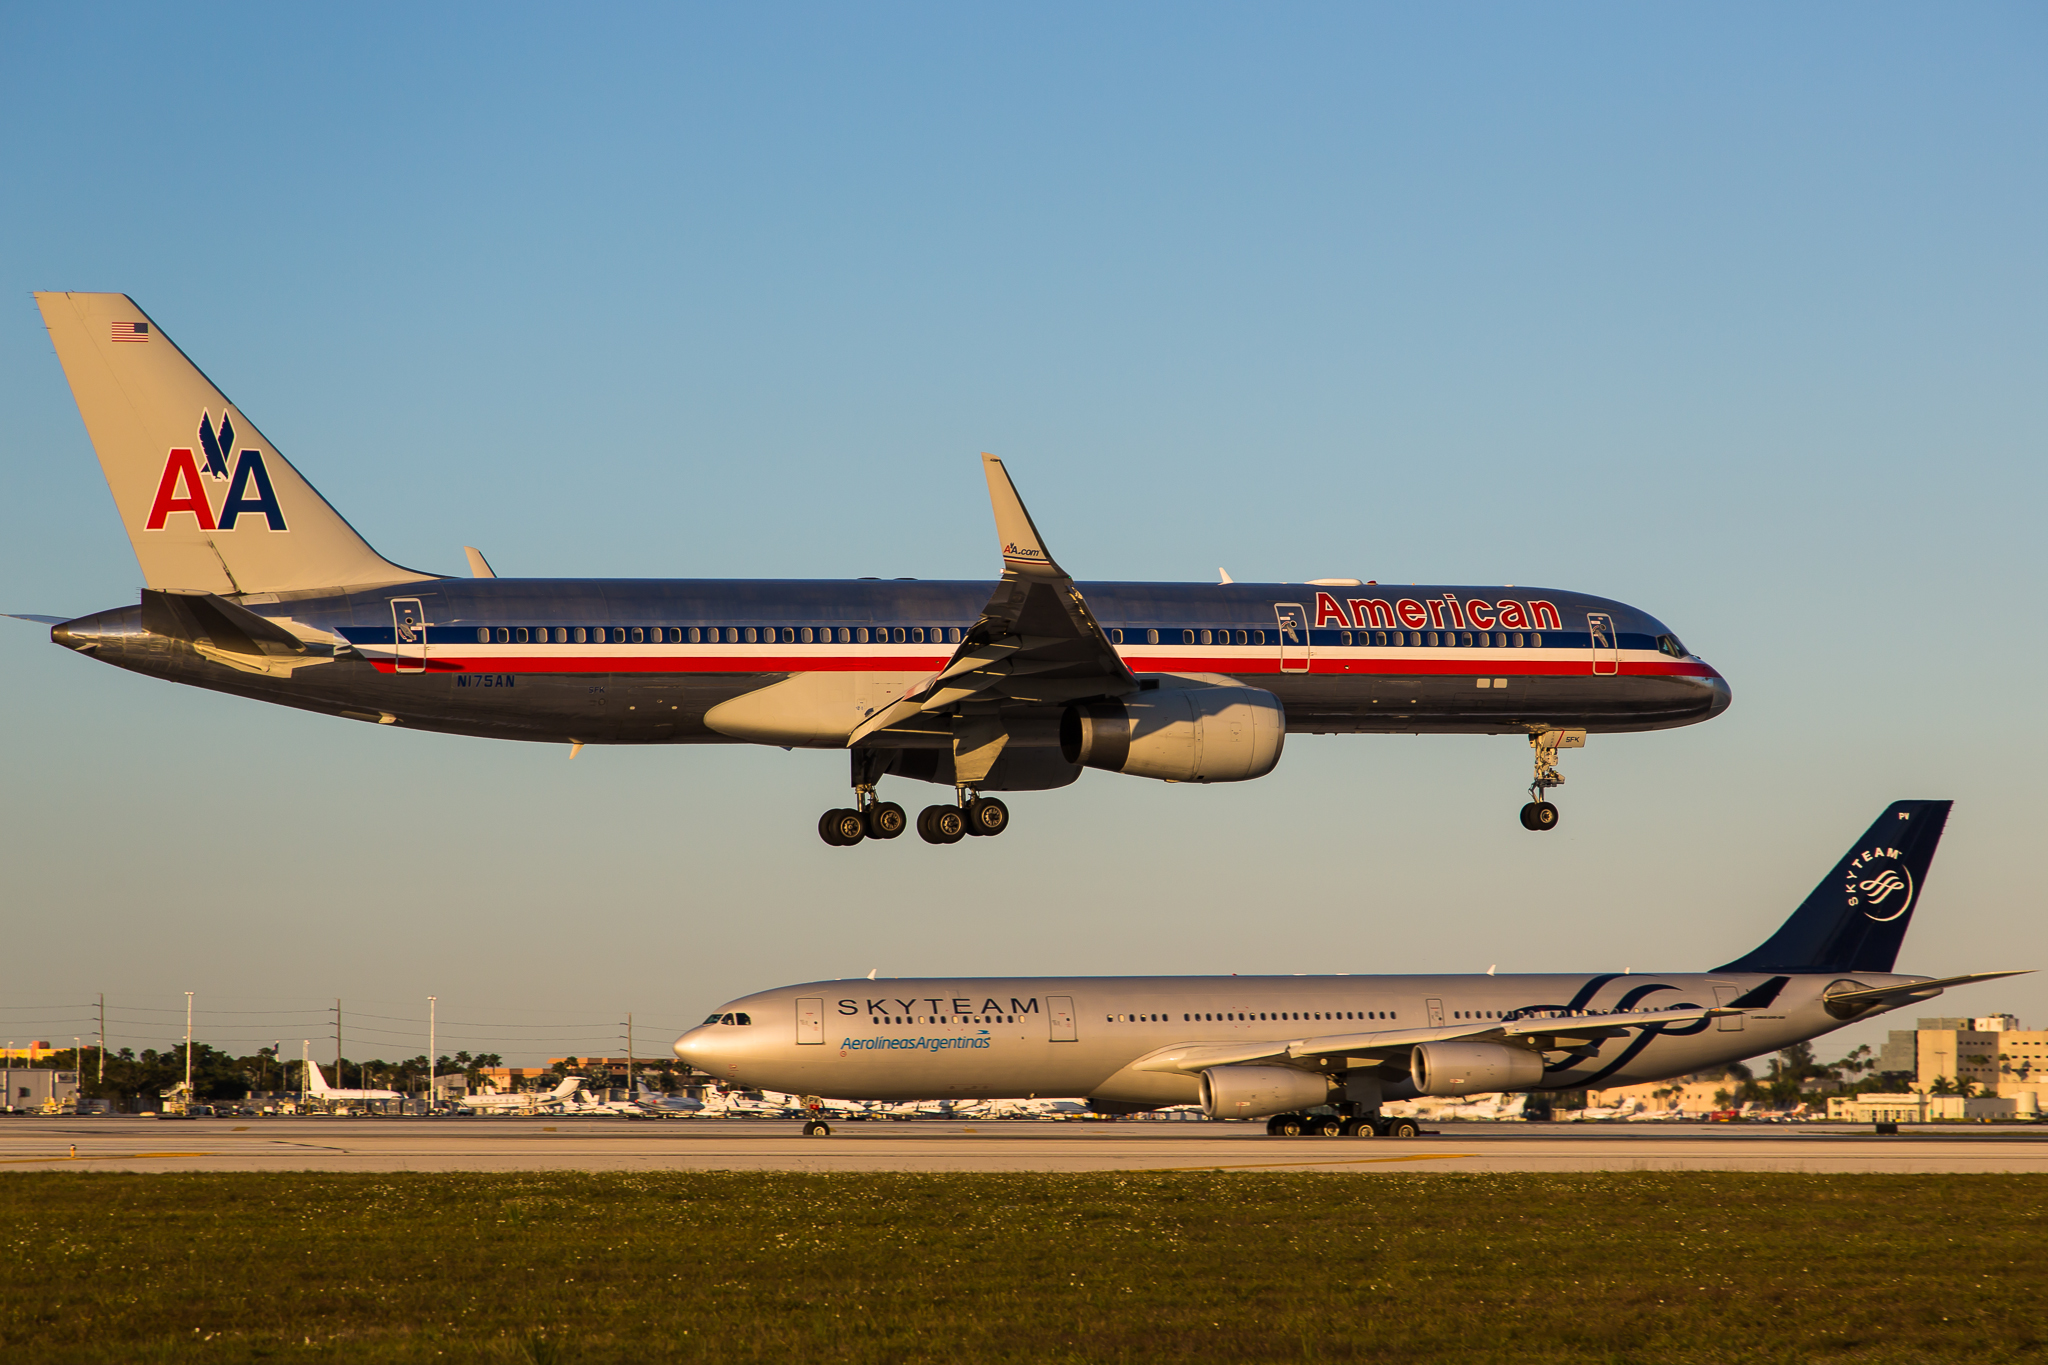 An American Airlines plane is landing at an airport.